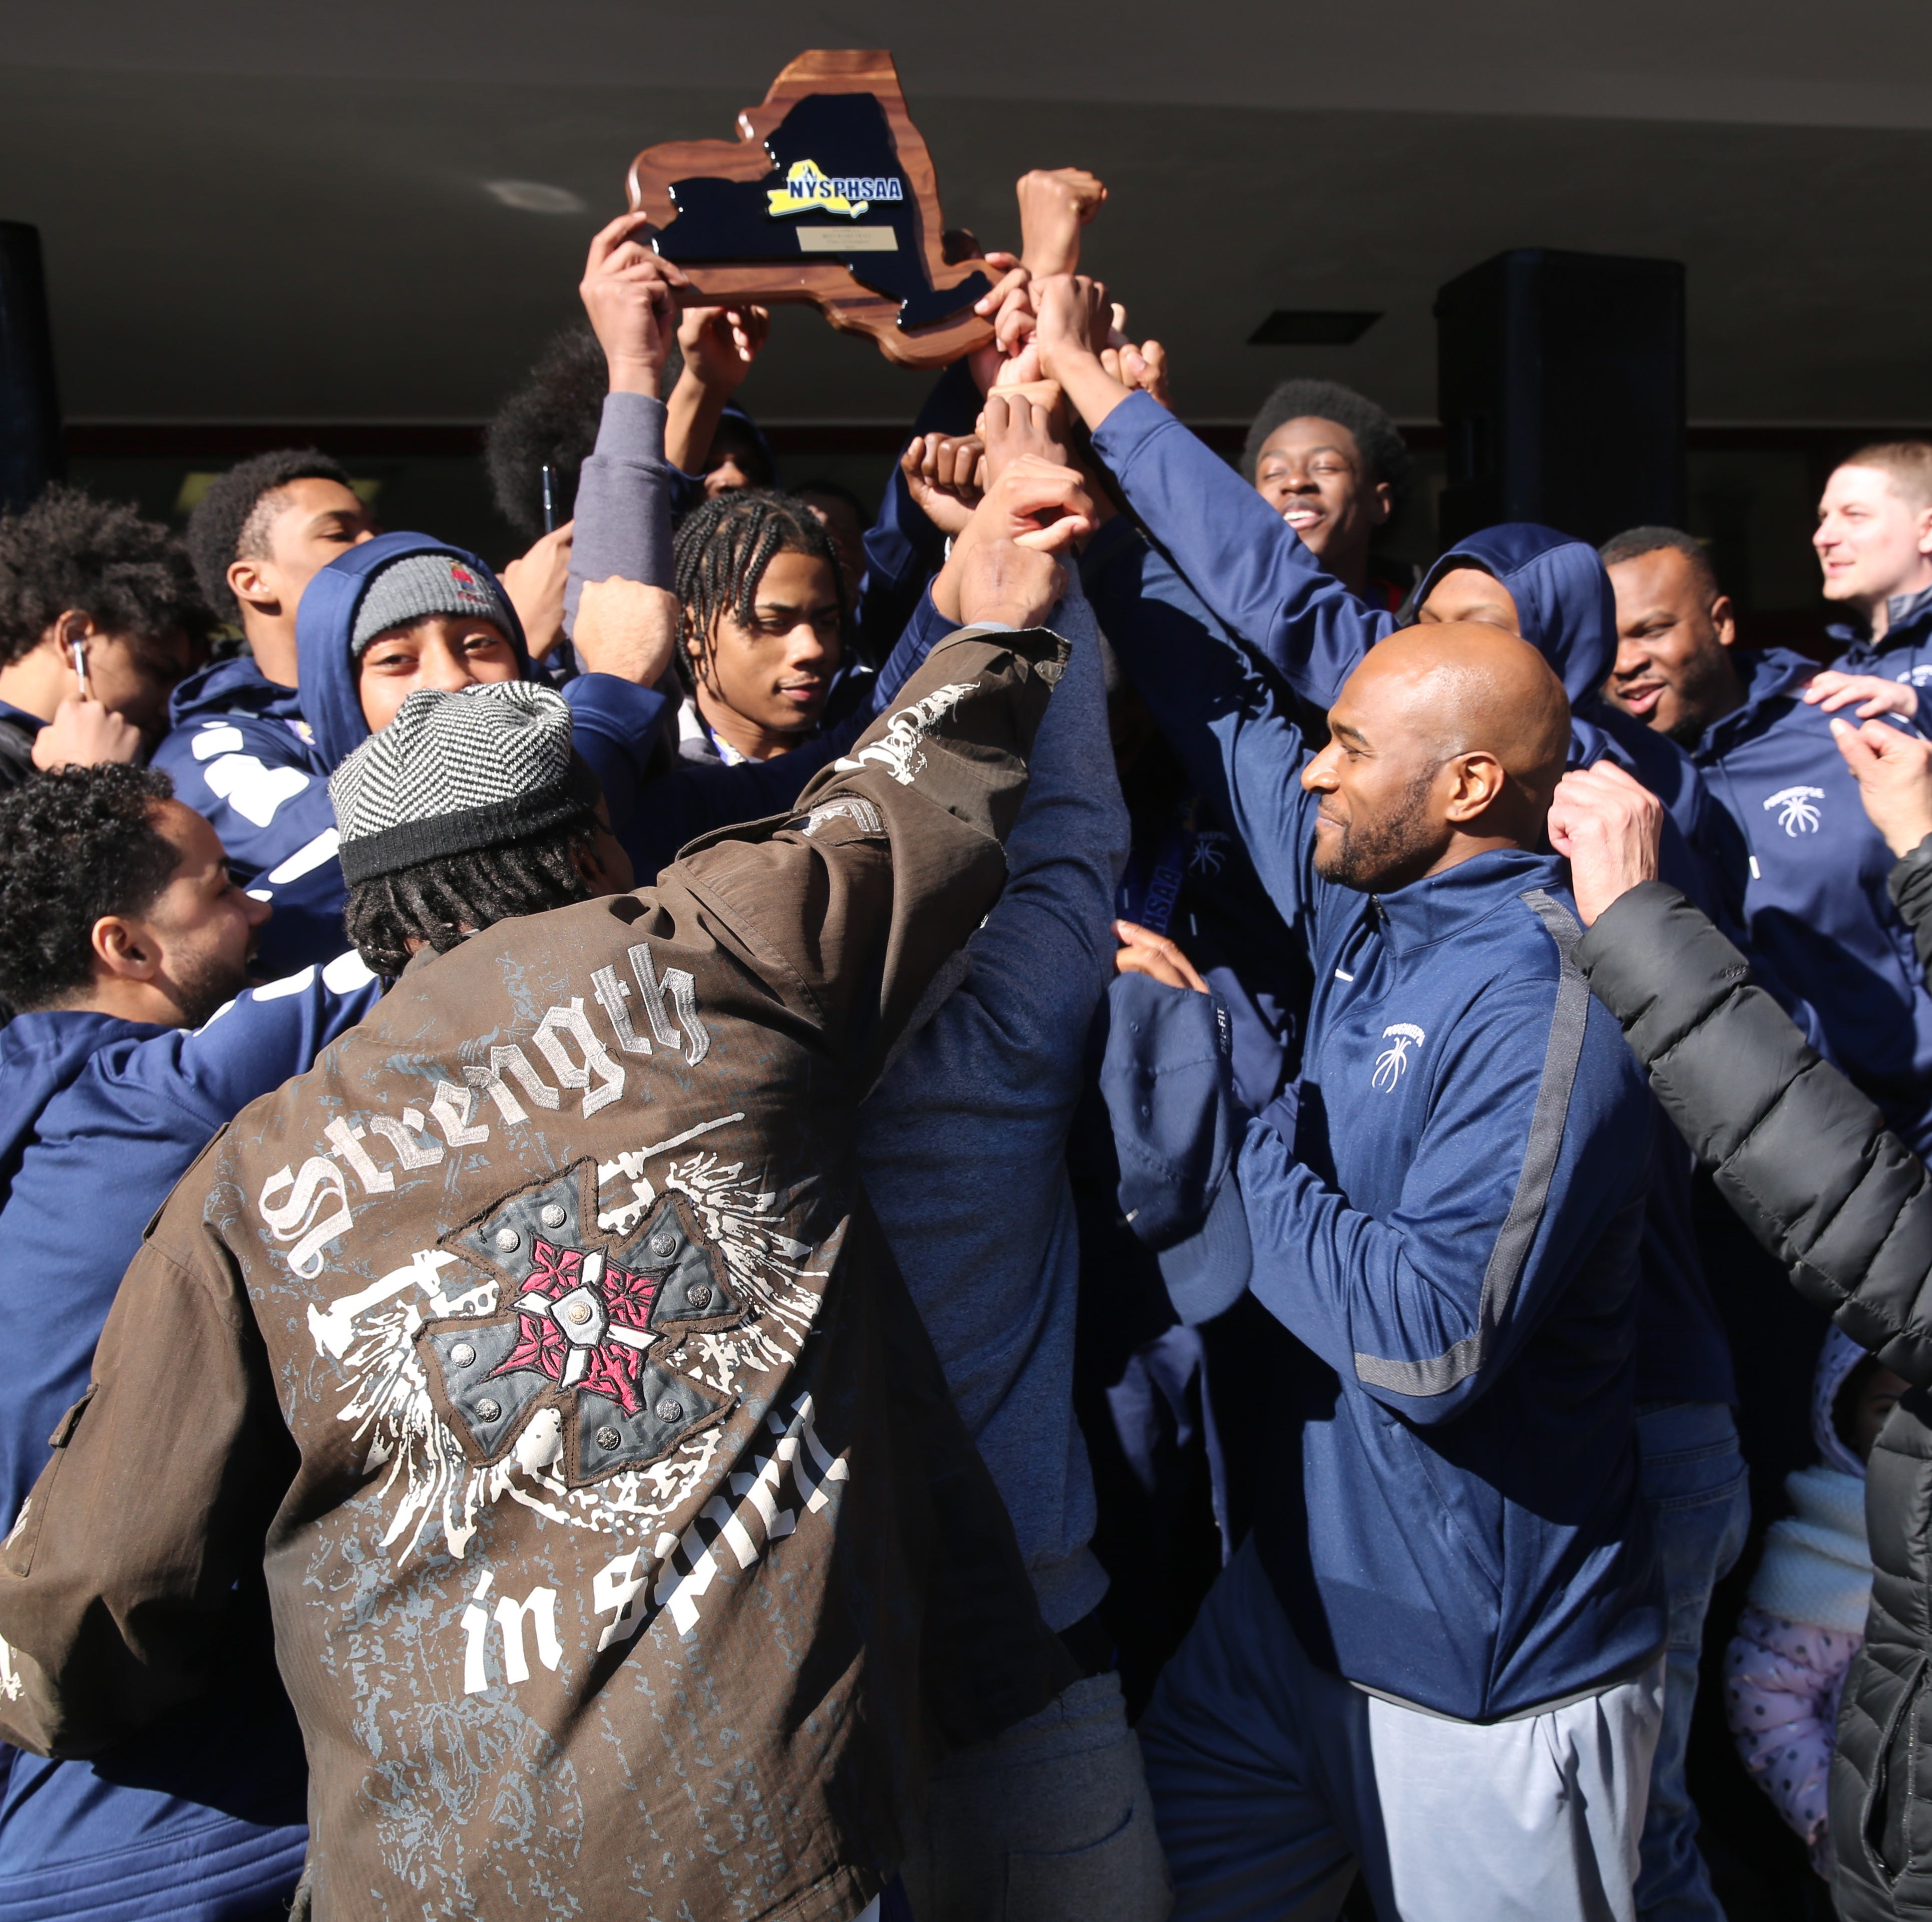 Poughkeepsie boys basketball celebrates state title with community in return party